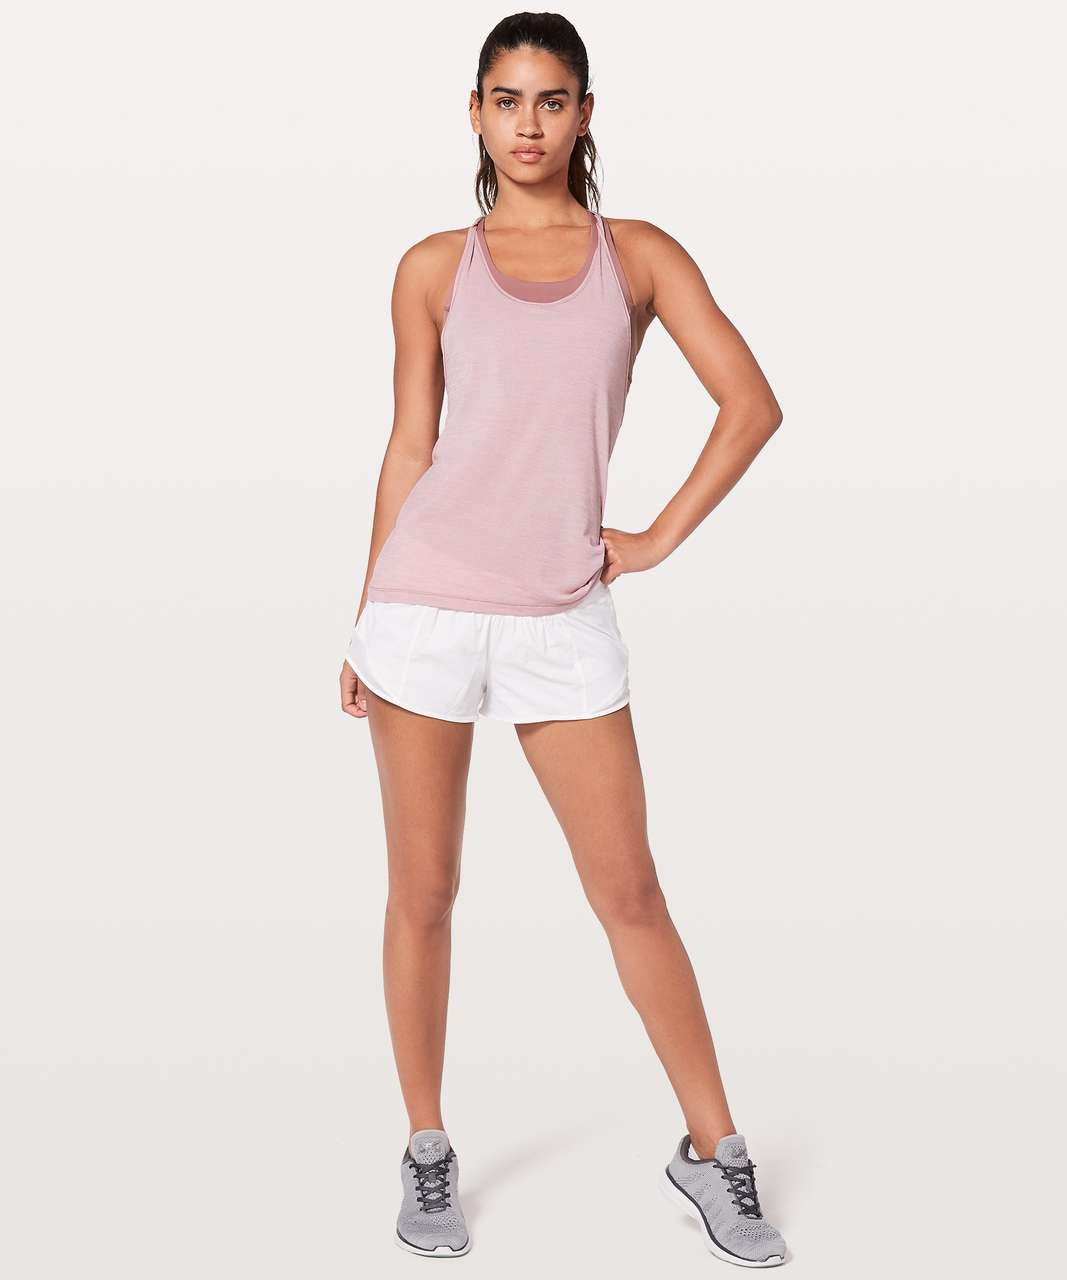 Lululemon Twist & Toil Tank - Heathered Rose Blush / Figue